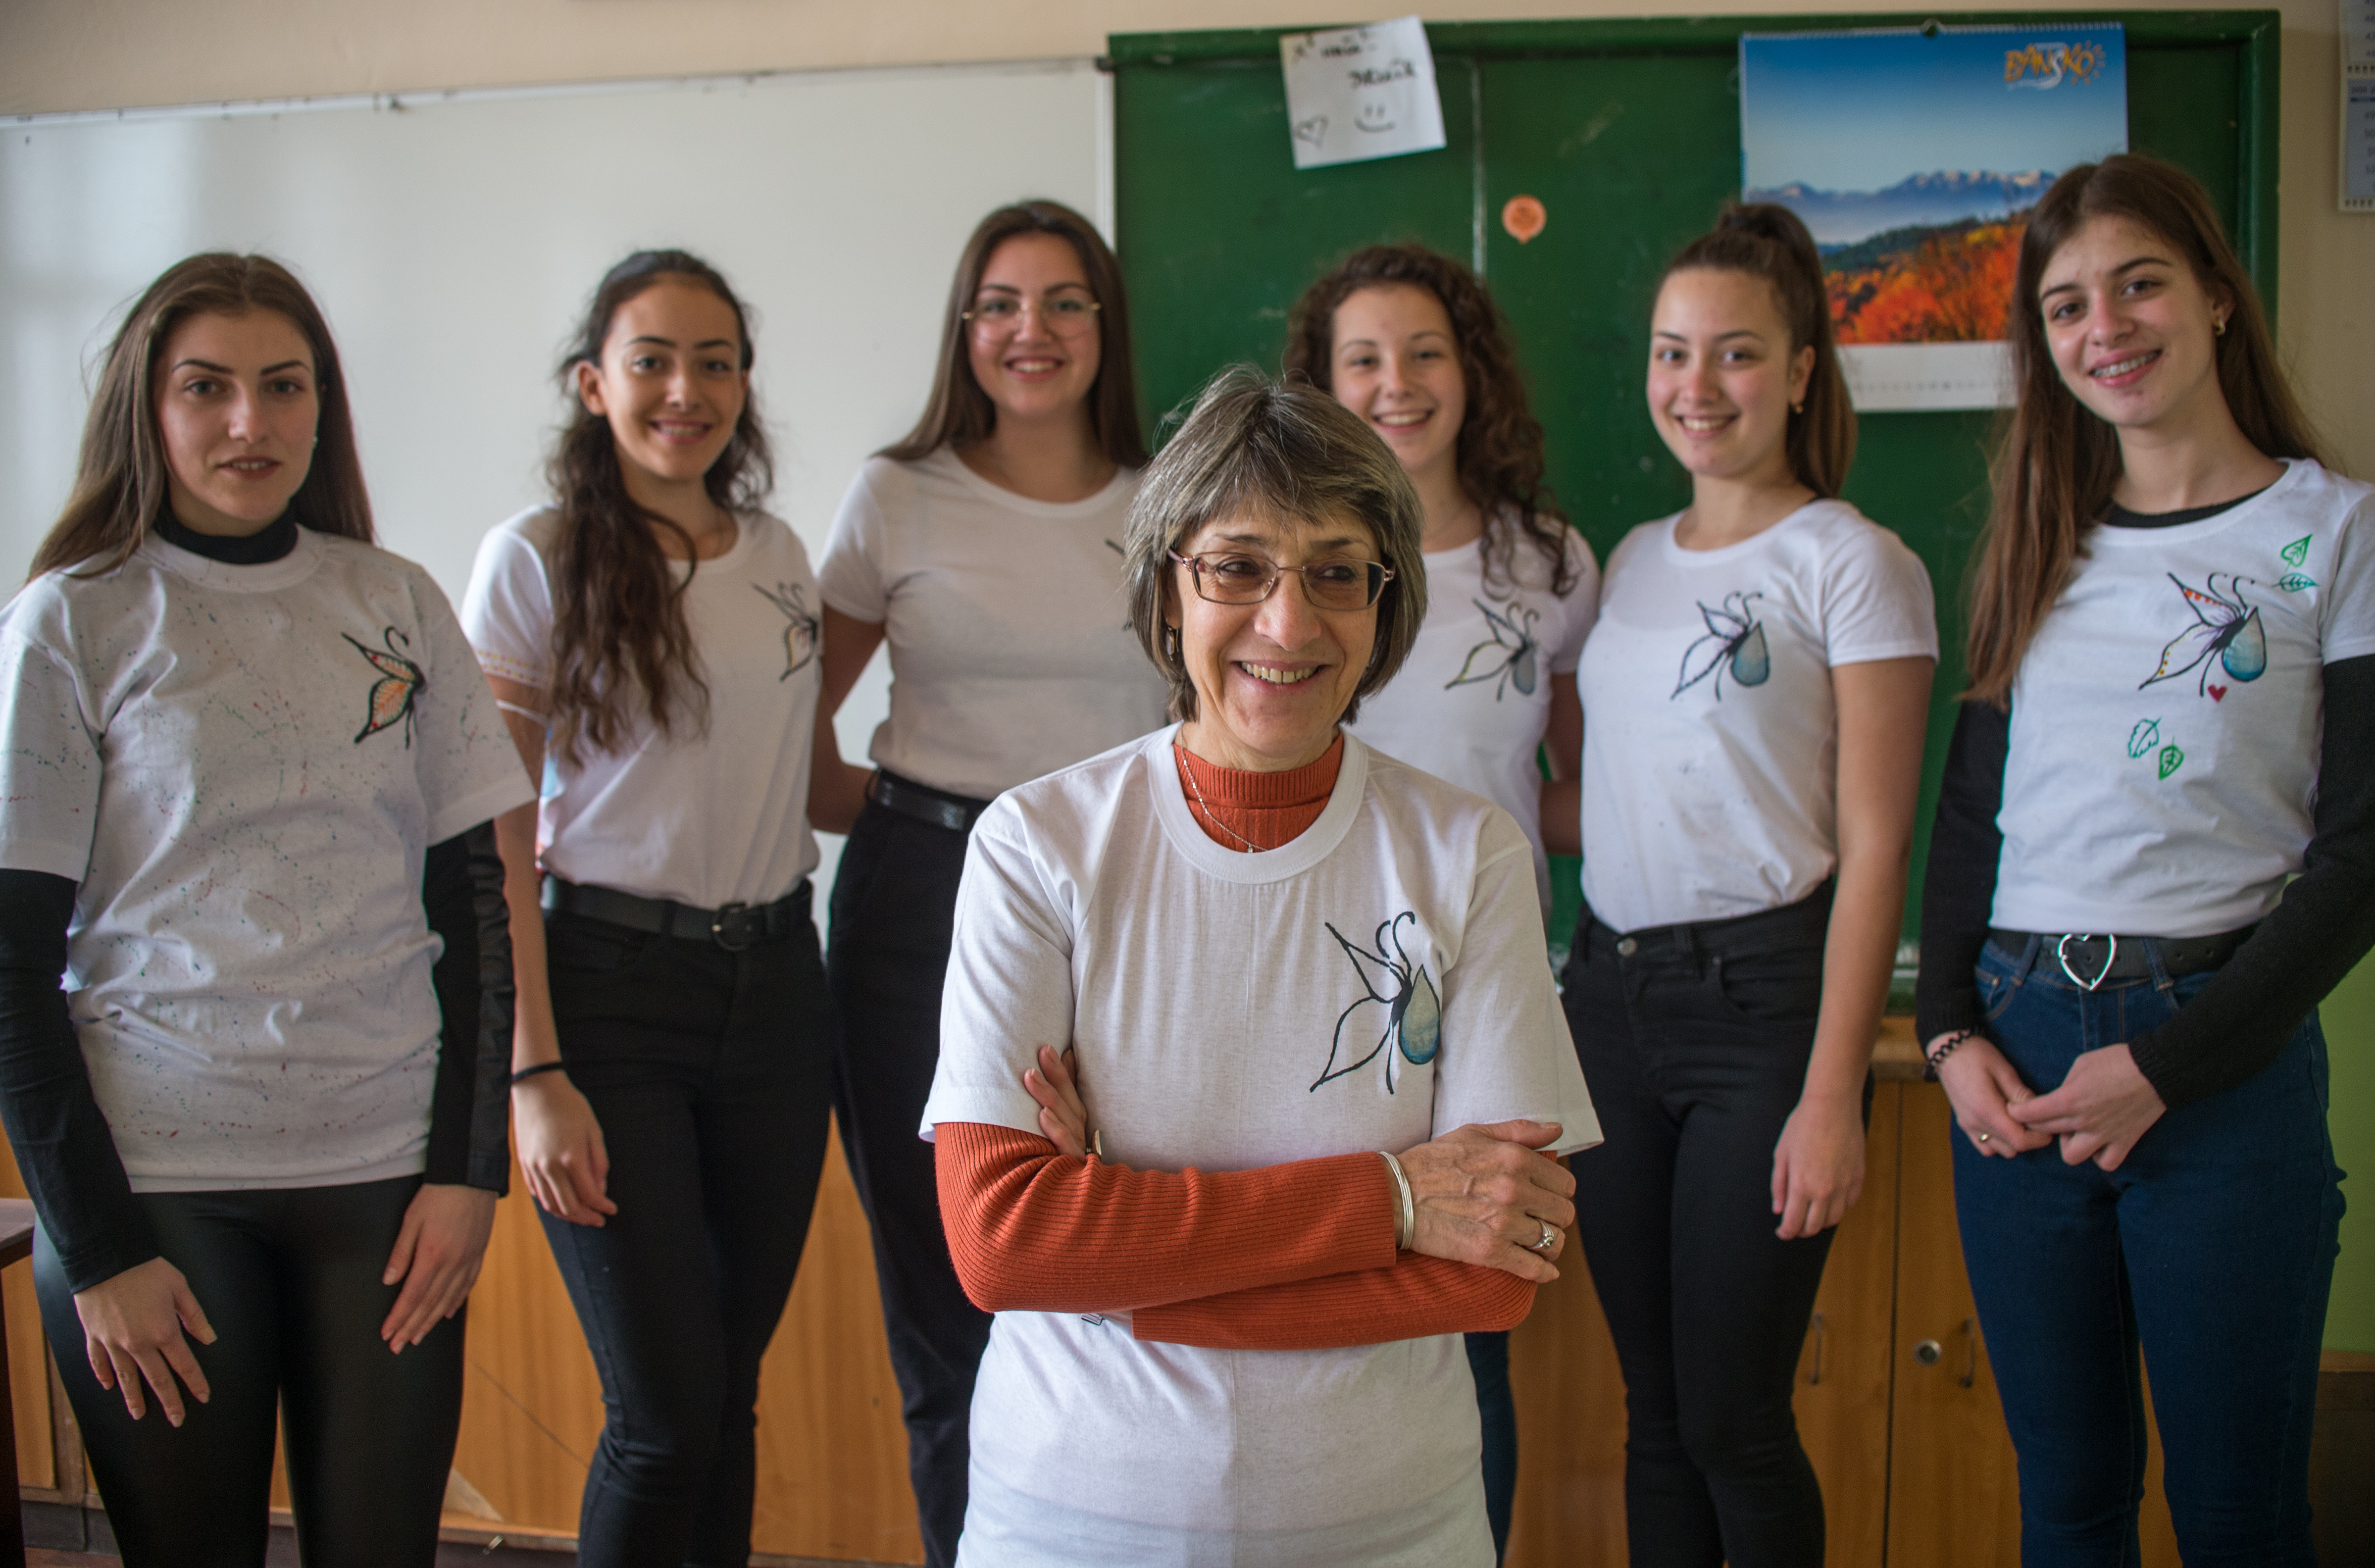 Achieving more together: Katya Brankova was able to inspire her students to join her cause. © Nikolay Doychinov